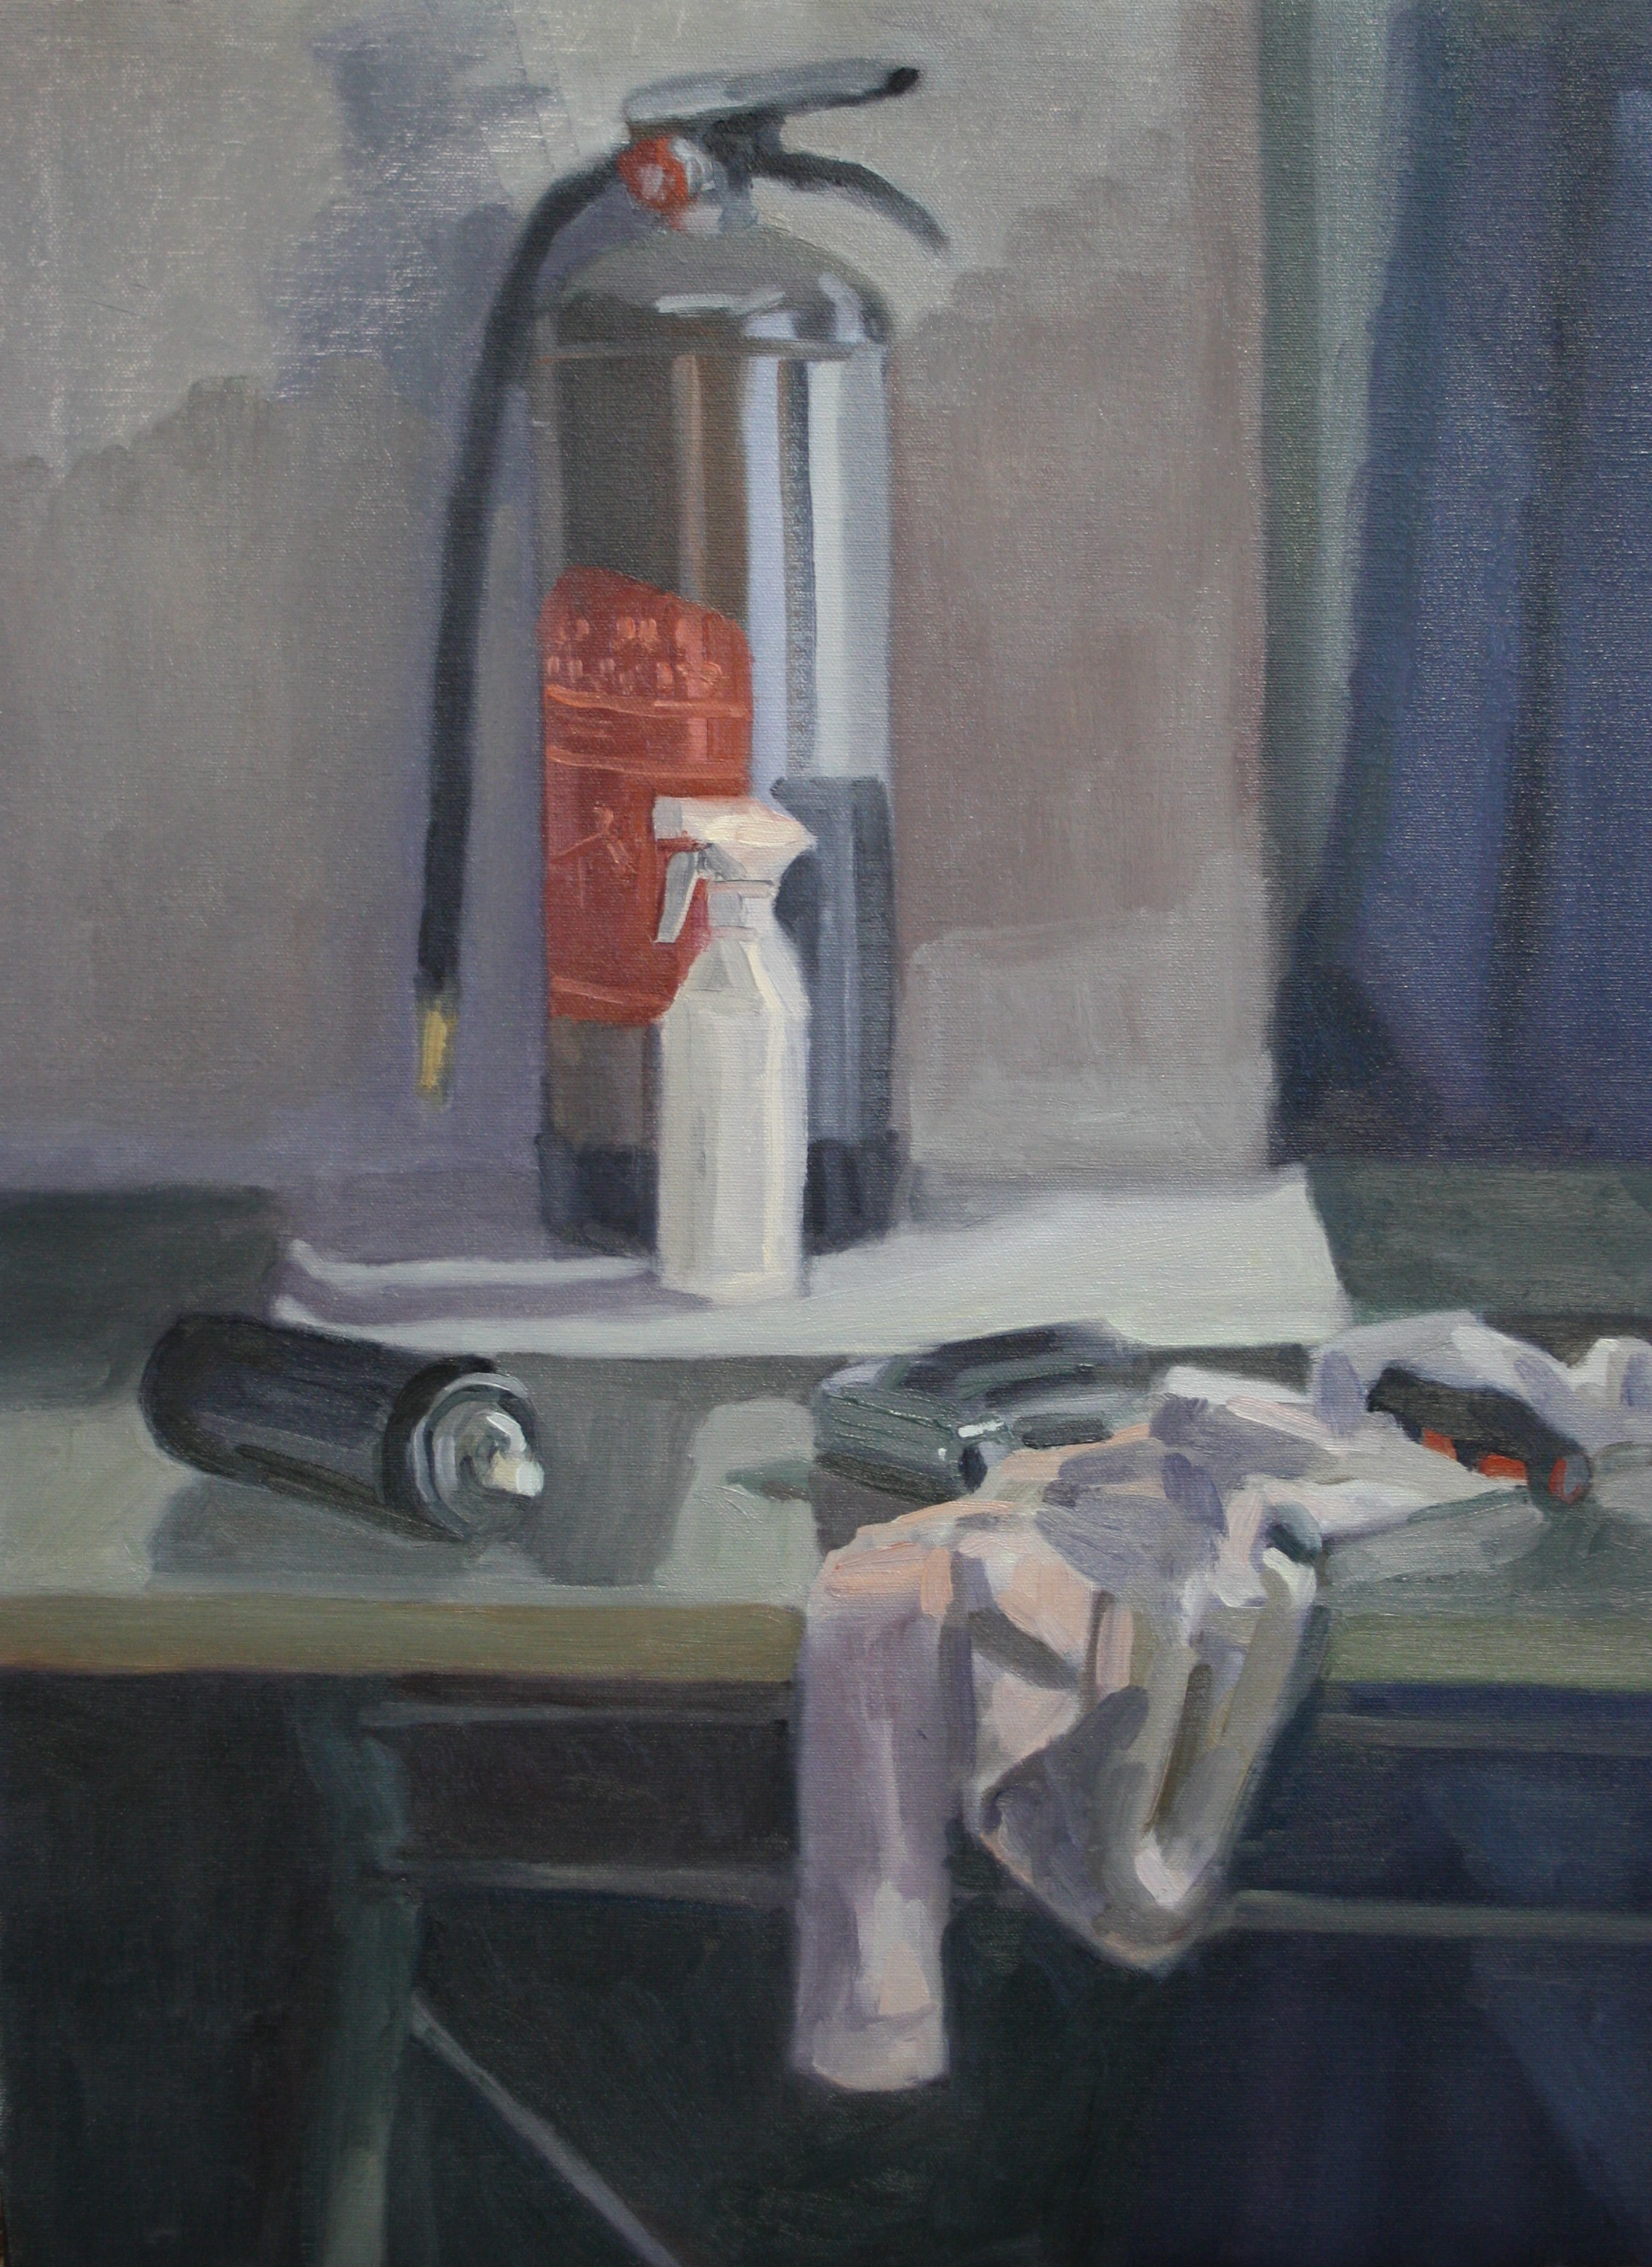 Sebastian Aplin, Studio Interior 1, Oil on canvas, 60 x 44 cm, 2018